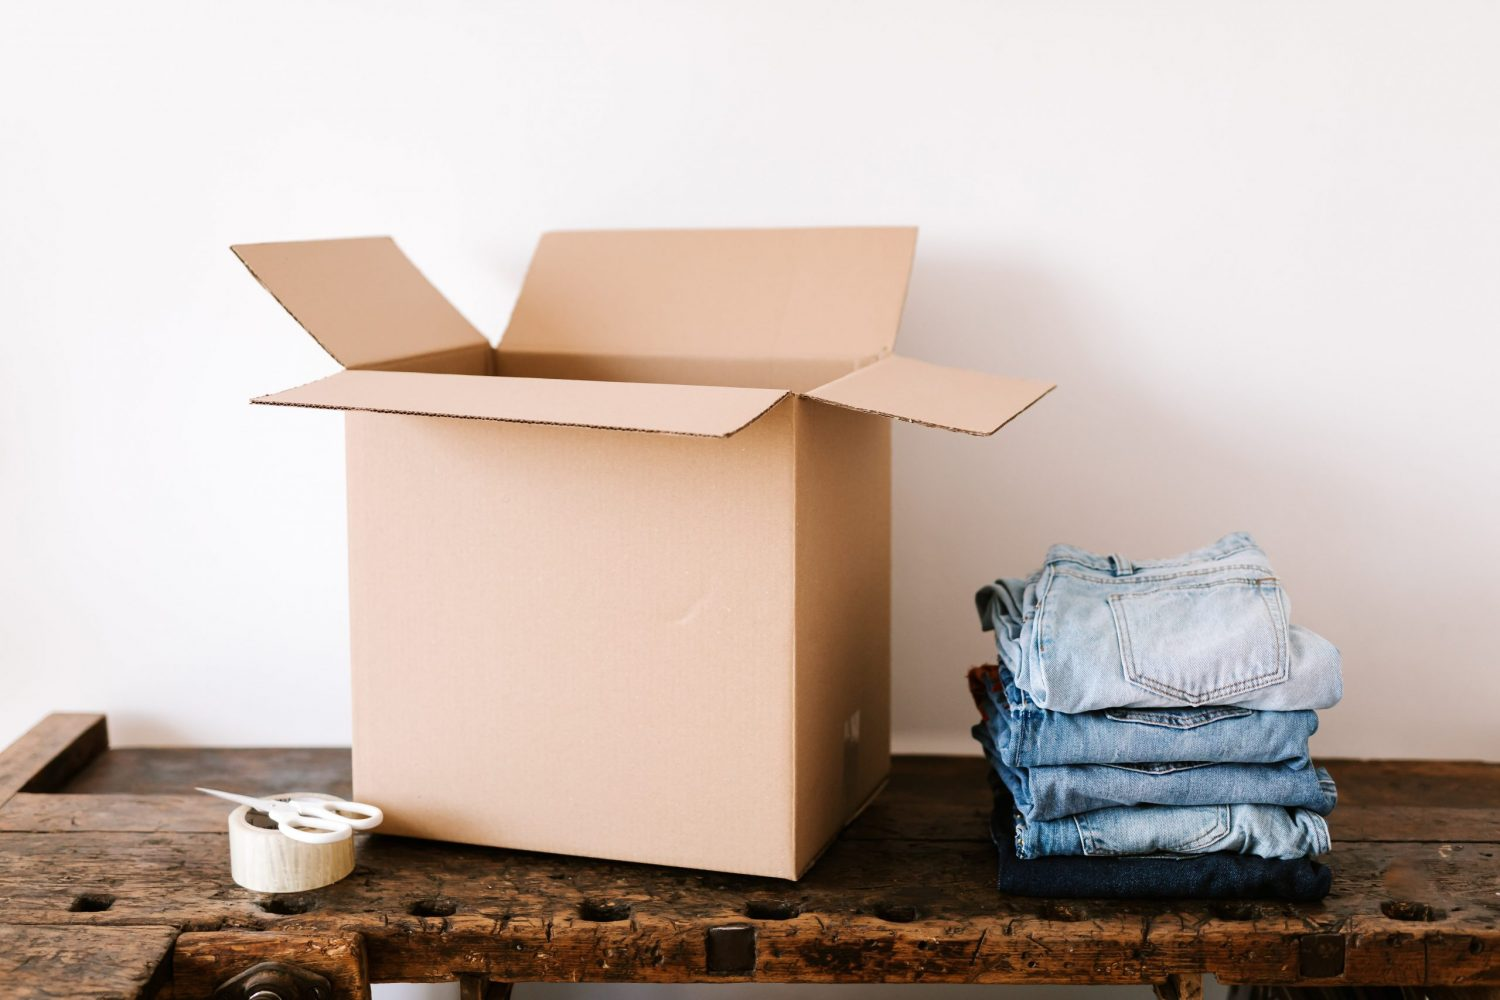 stack-of-jeans-near-carton-box-and-tape-4498141